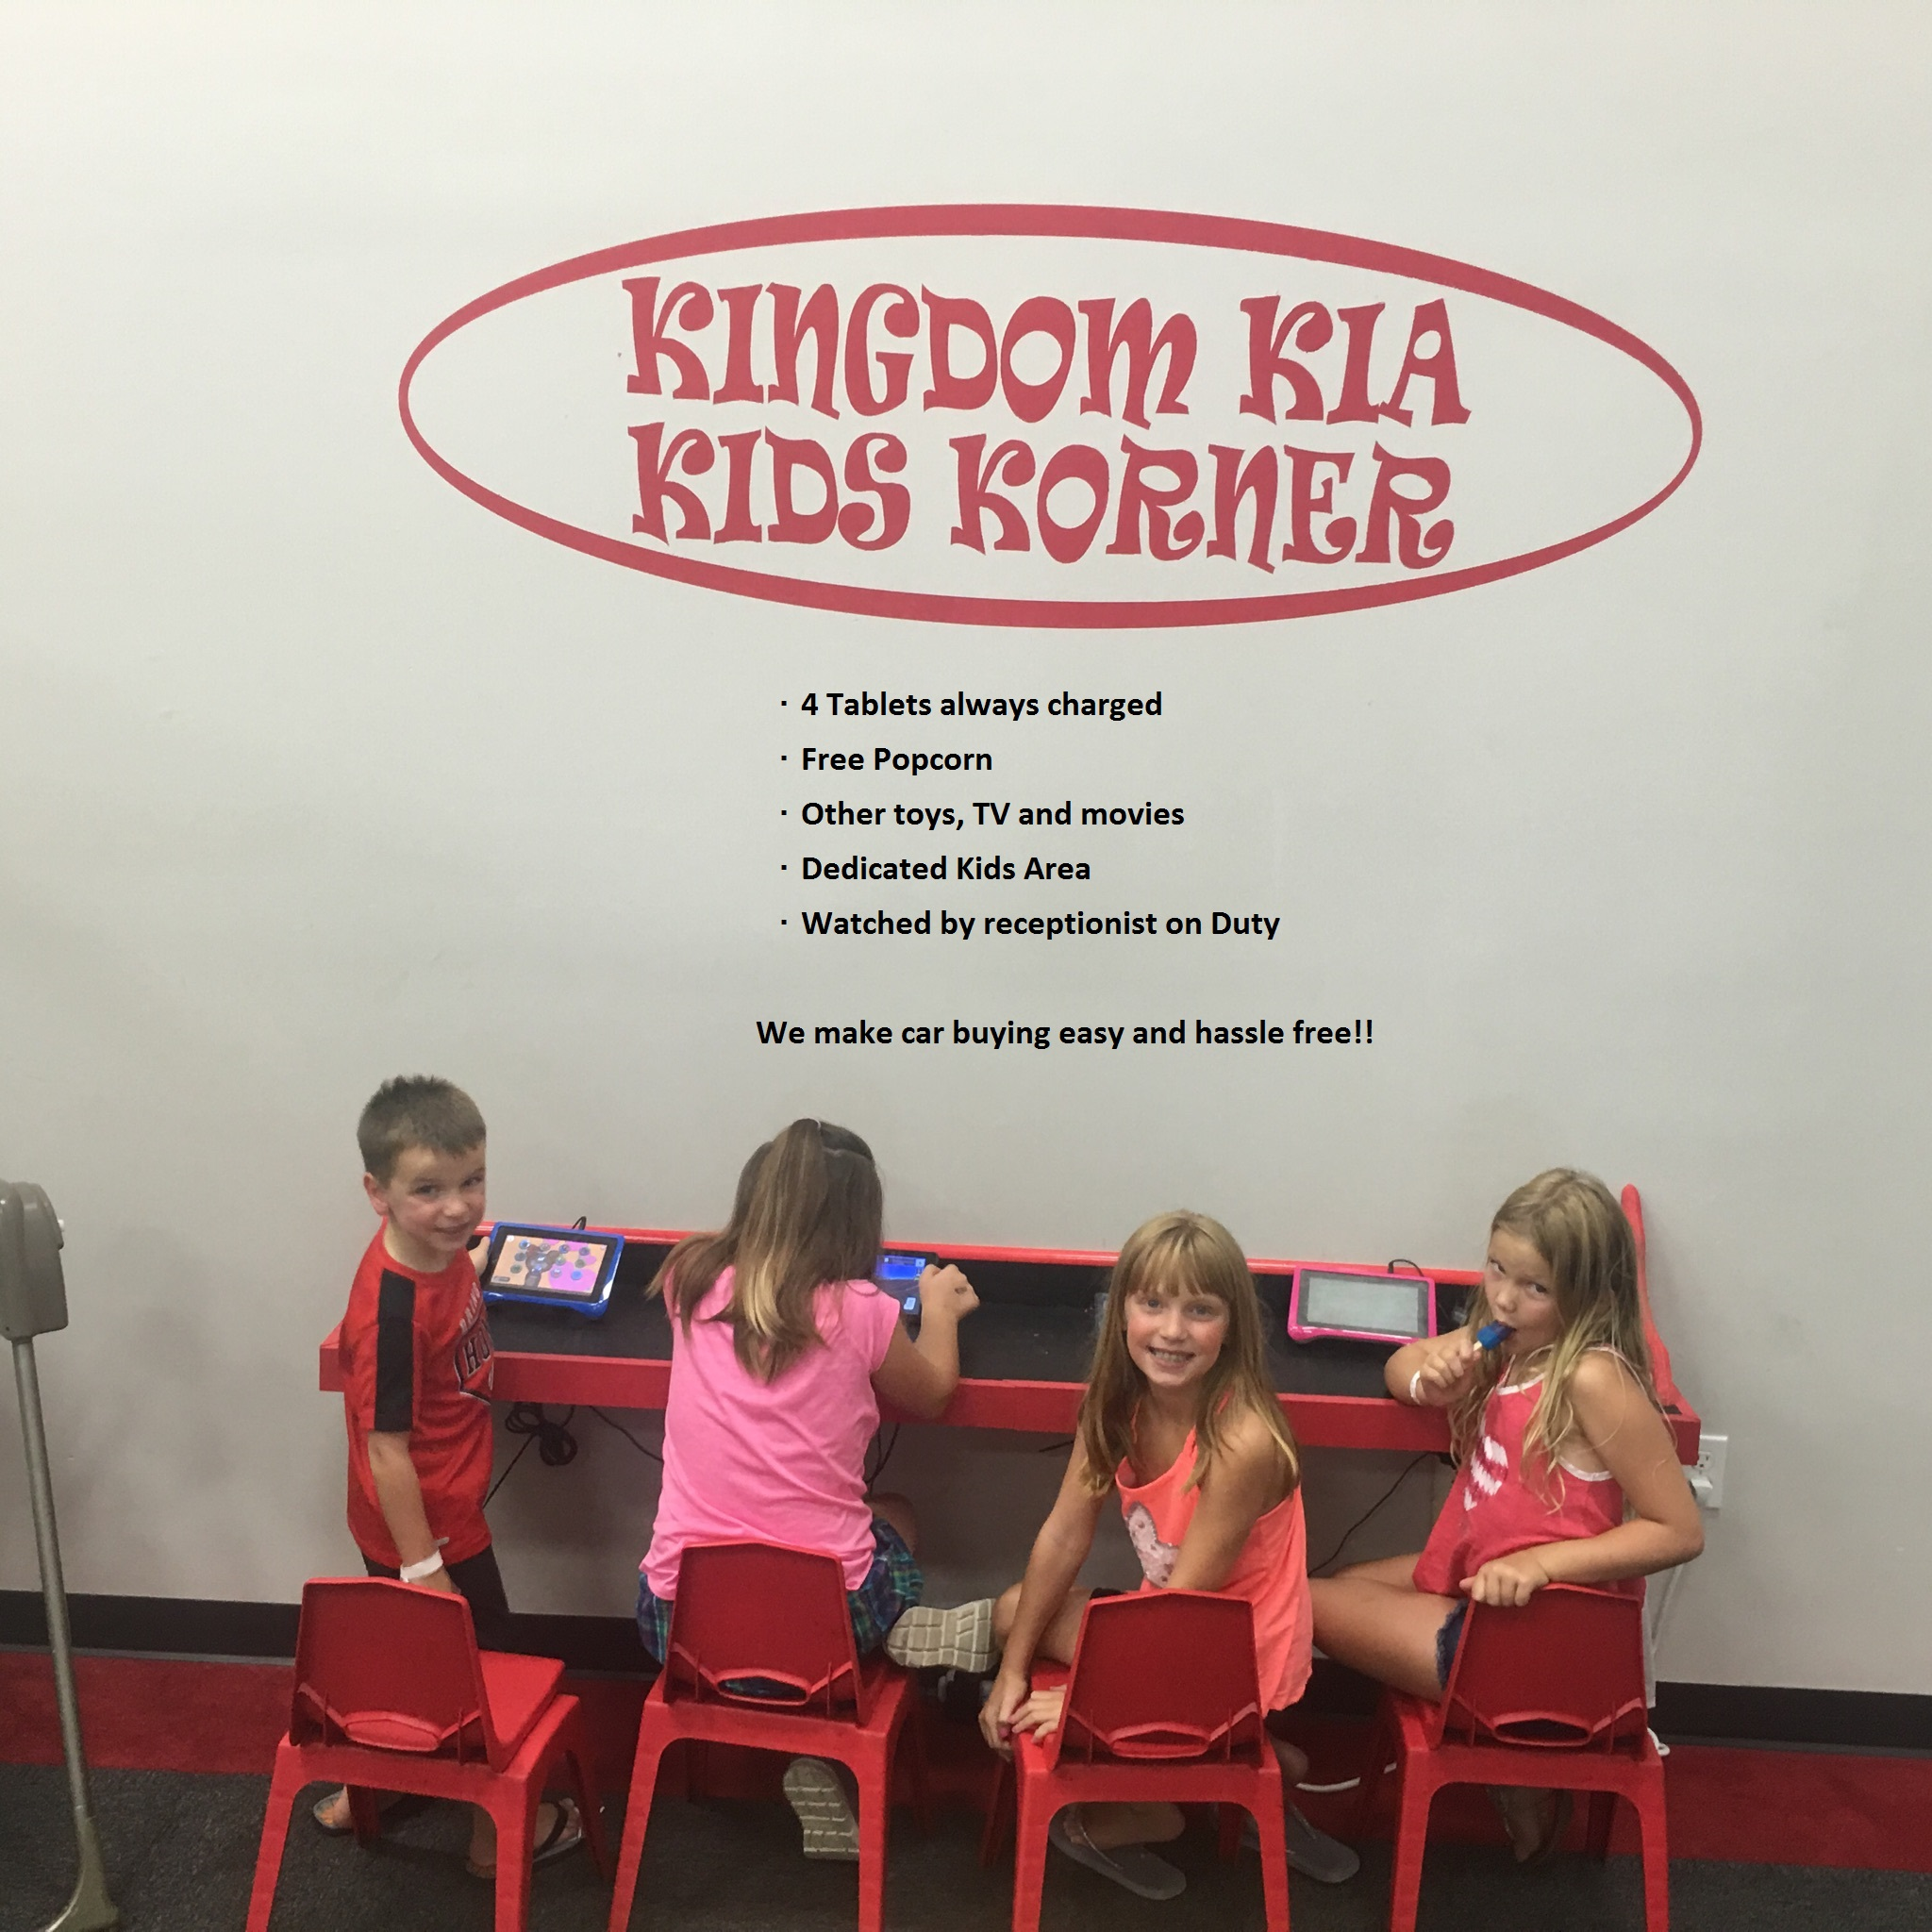 Kingdom Kia Kids Korner